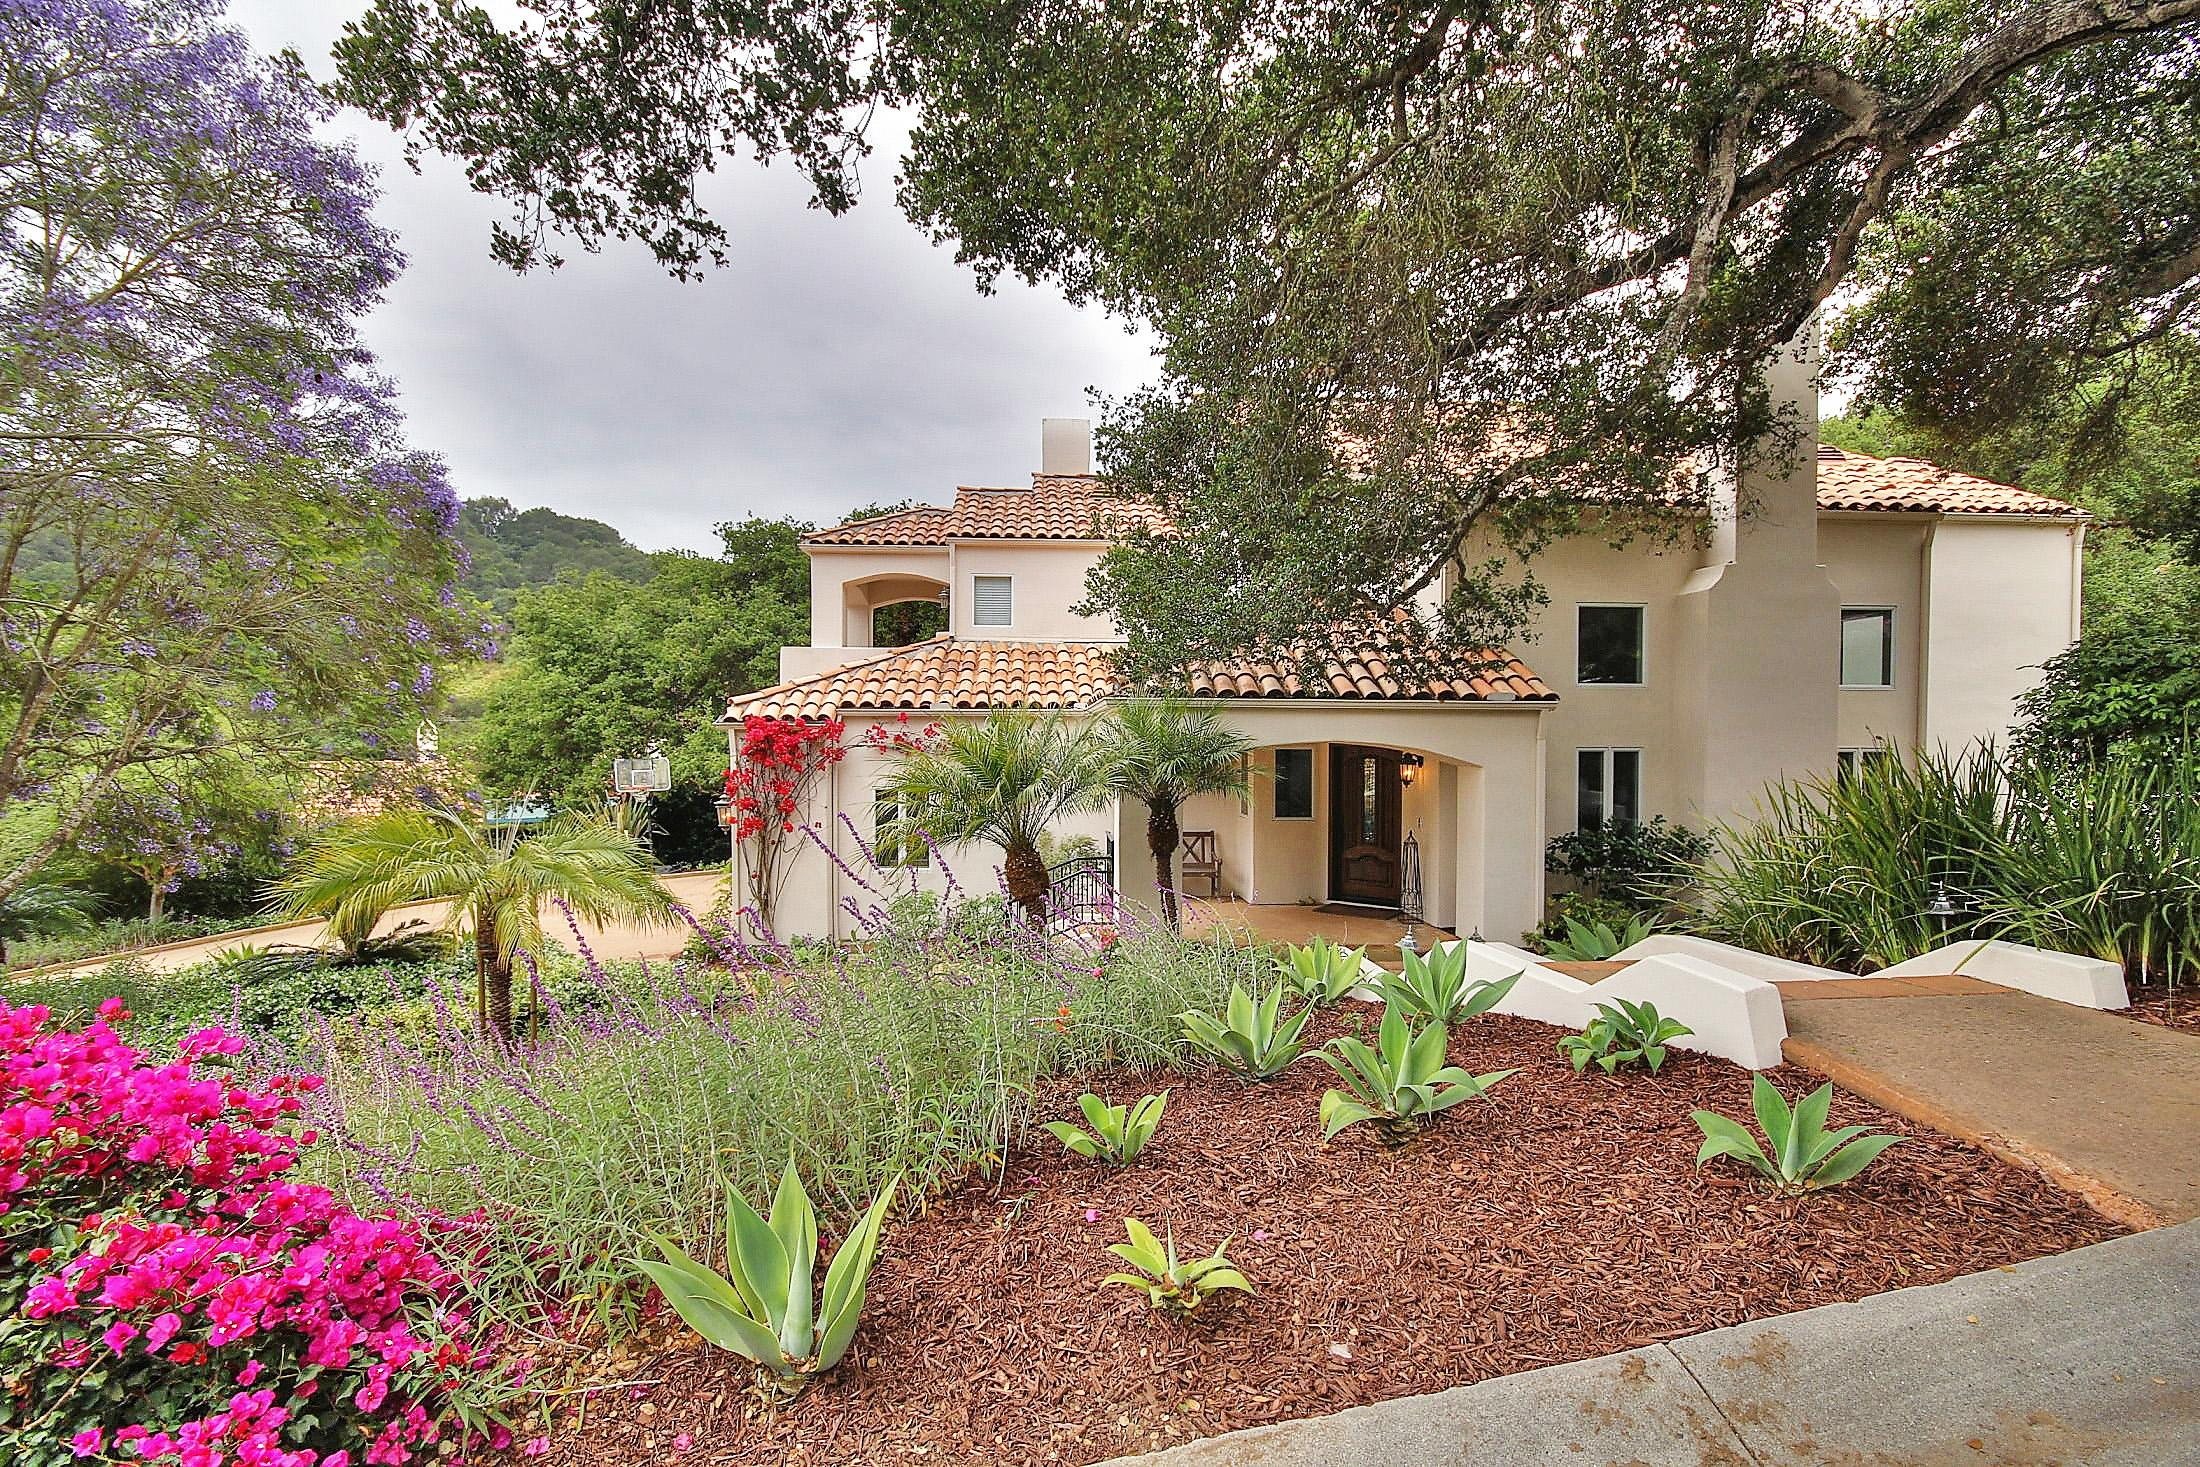 Property photo for 4137 Hidden Oaks Rd Santa Barbara, California 93105 - 13-1813